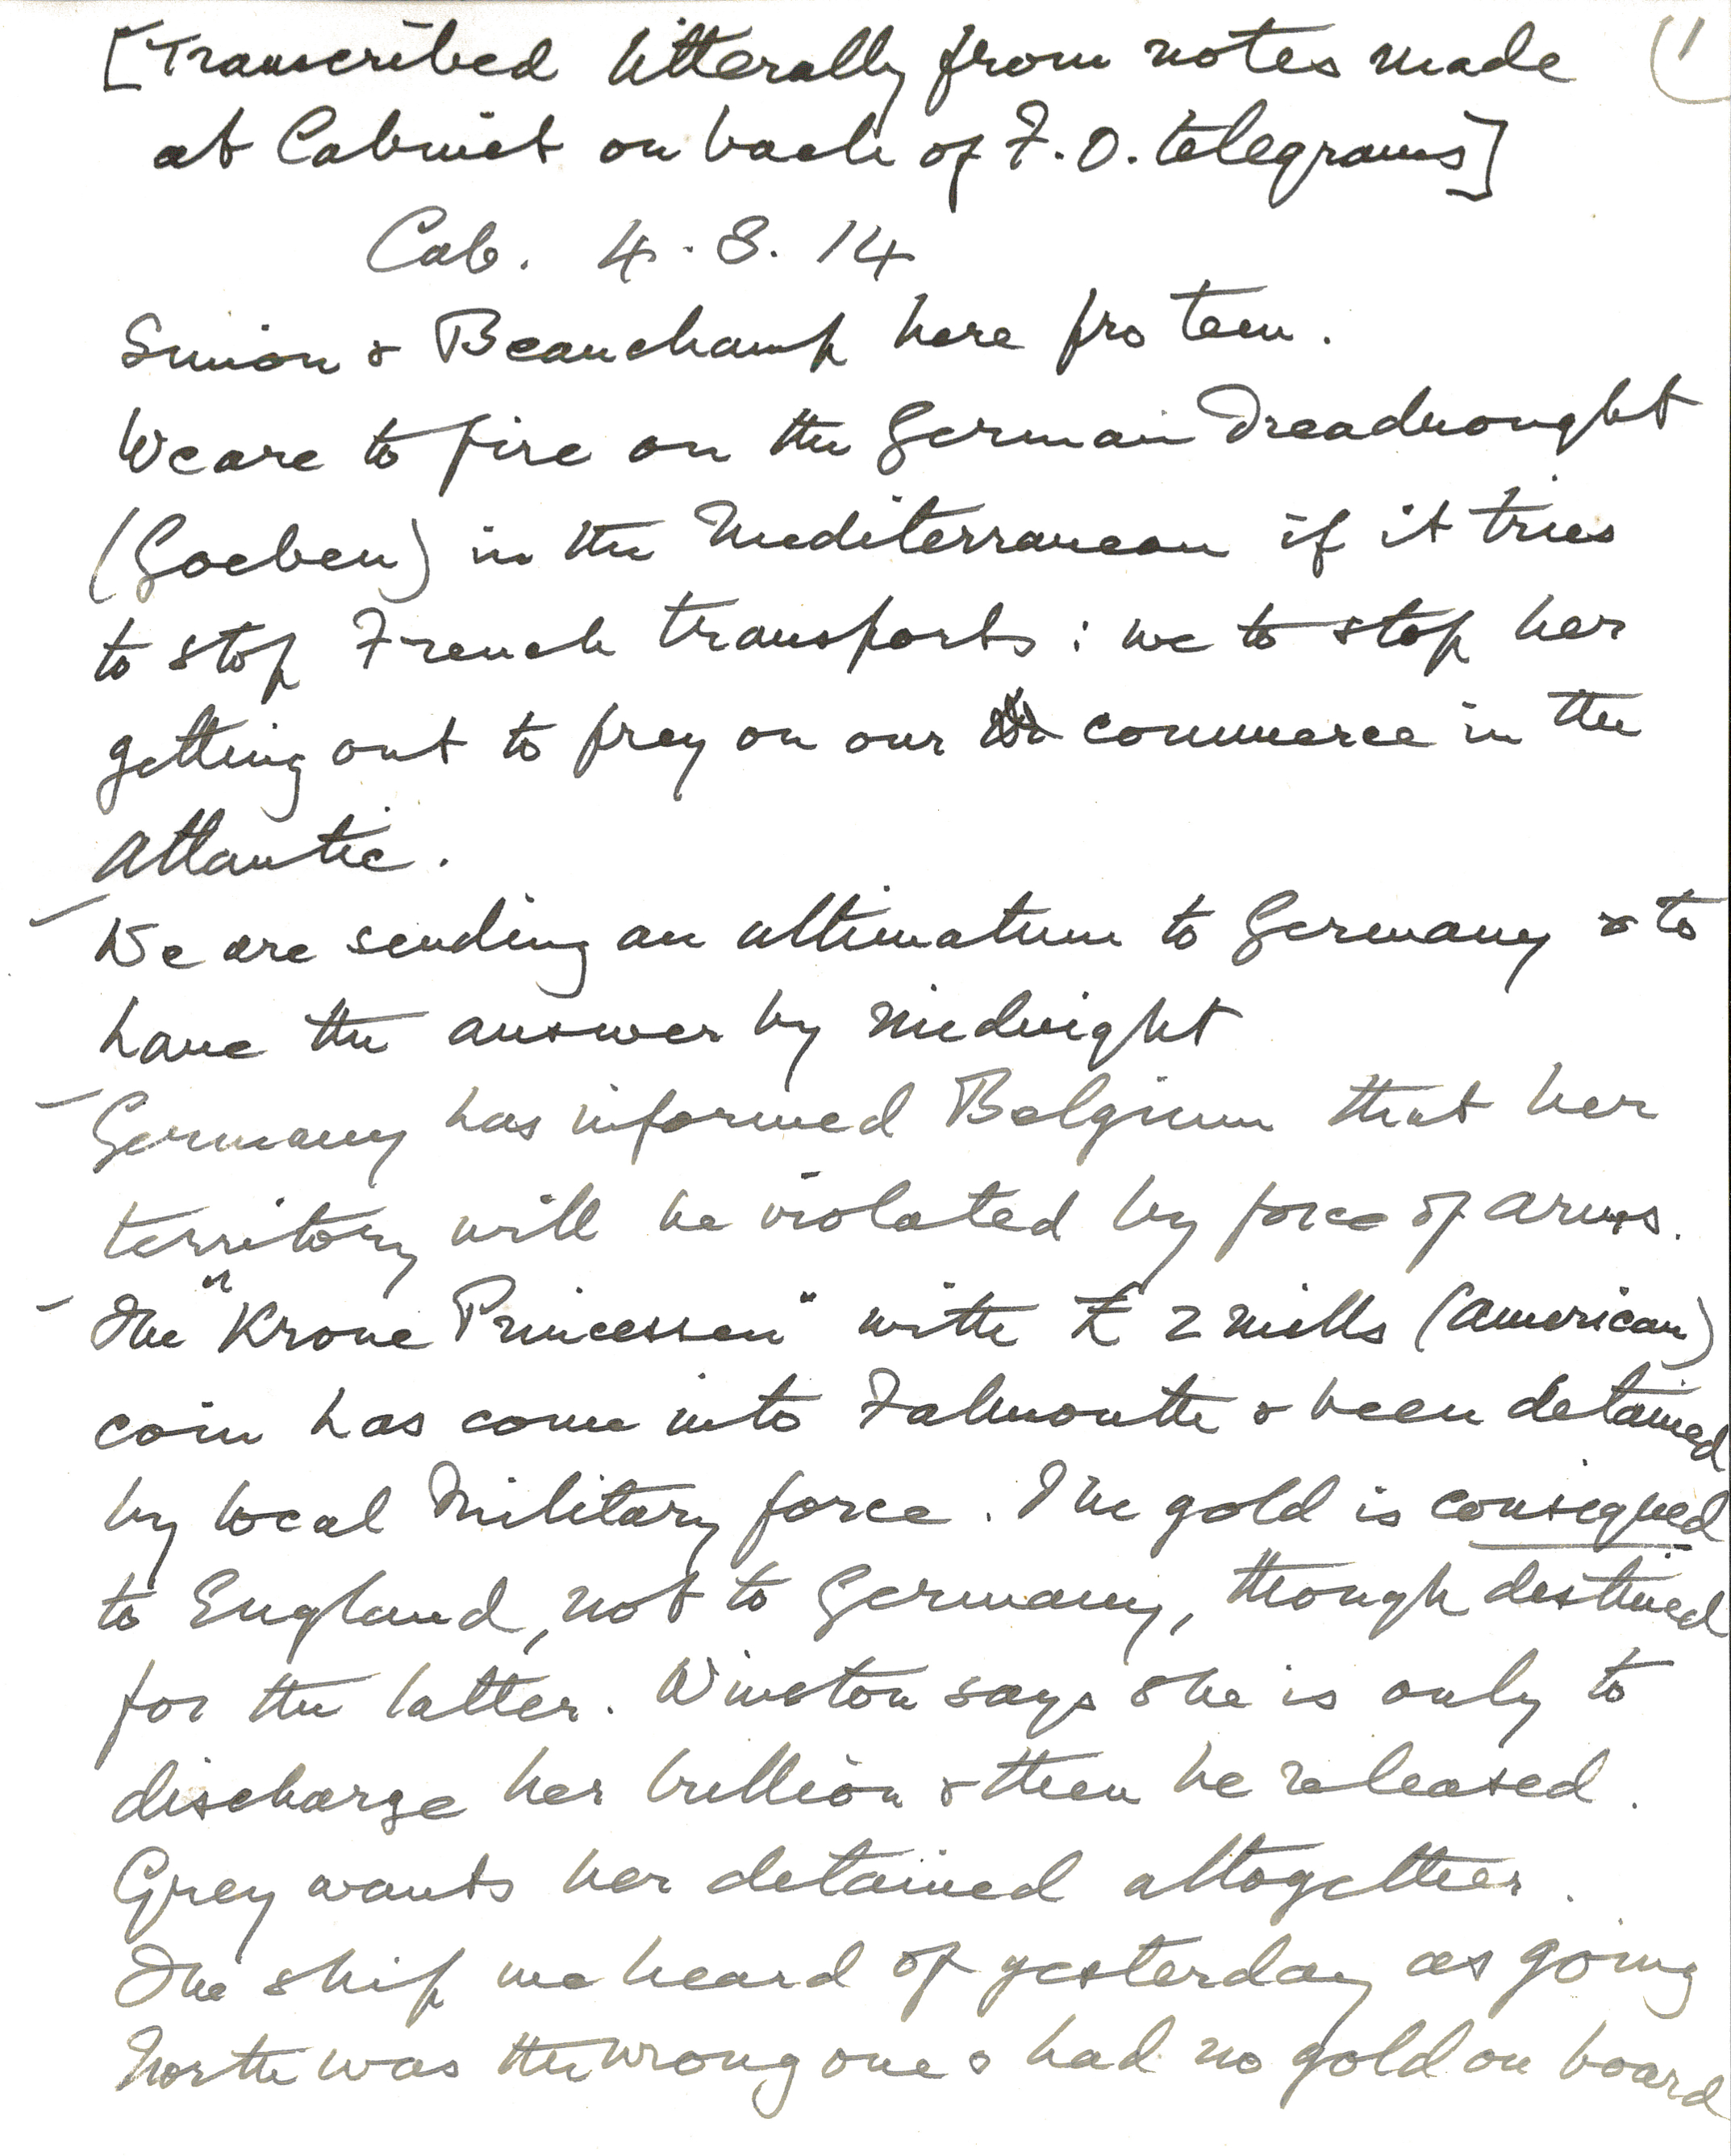 Entry from the political journal of Lewis Harcourt concerning the outbreak of the First World War, 4 August 1914.